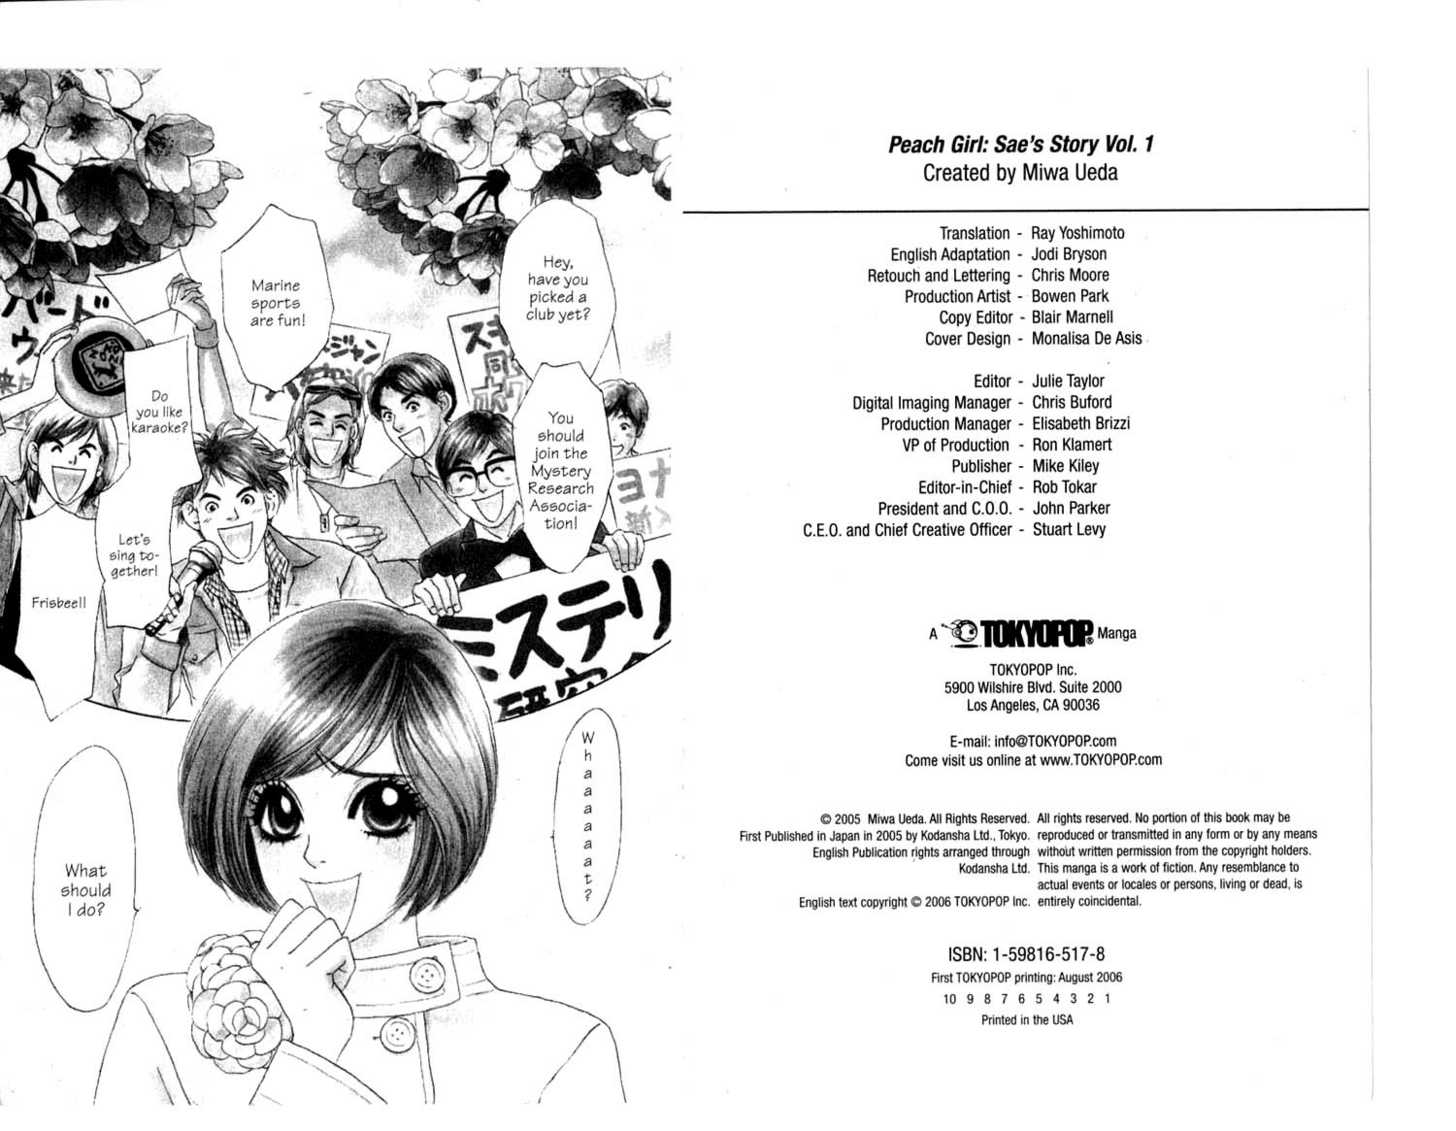 Peach Girl: Sae's Story 0 Page 2